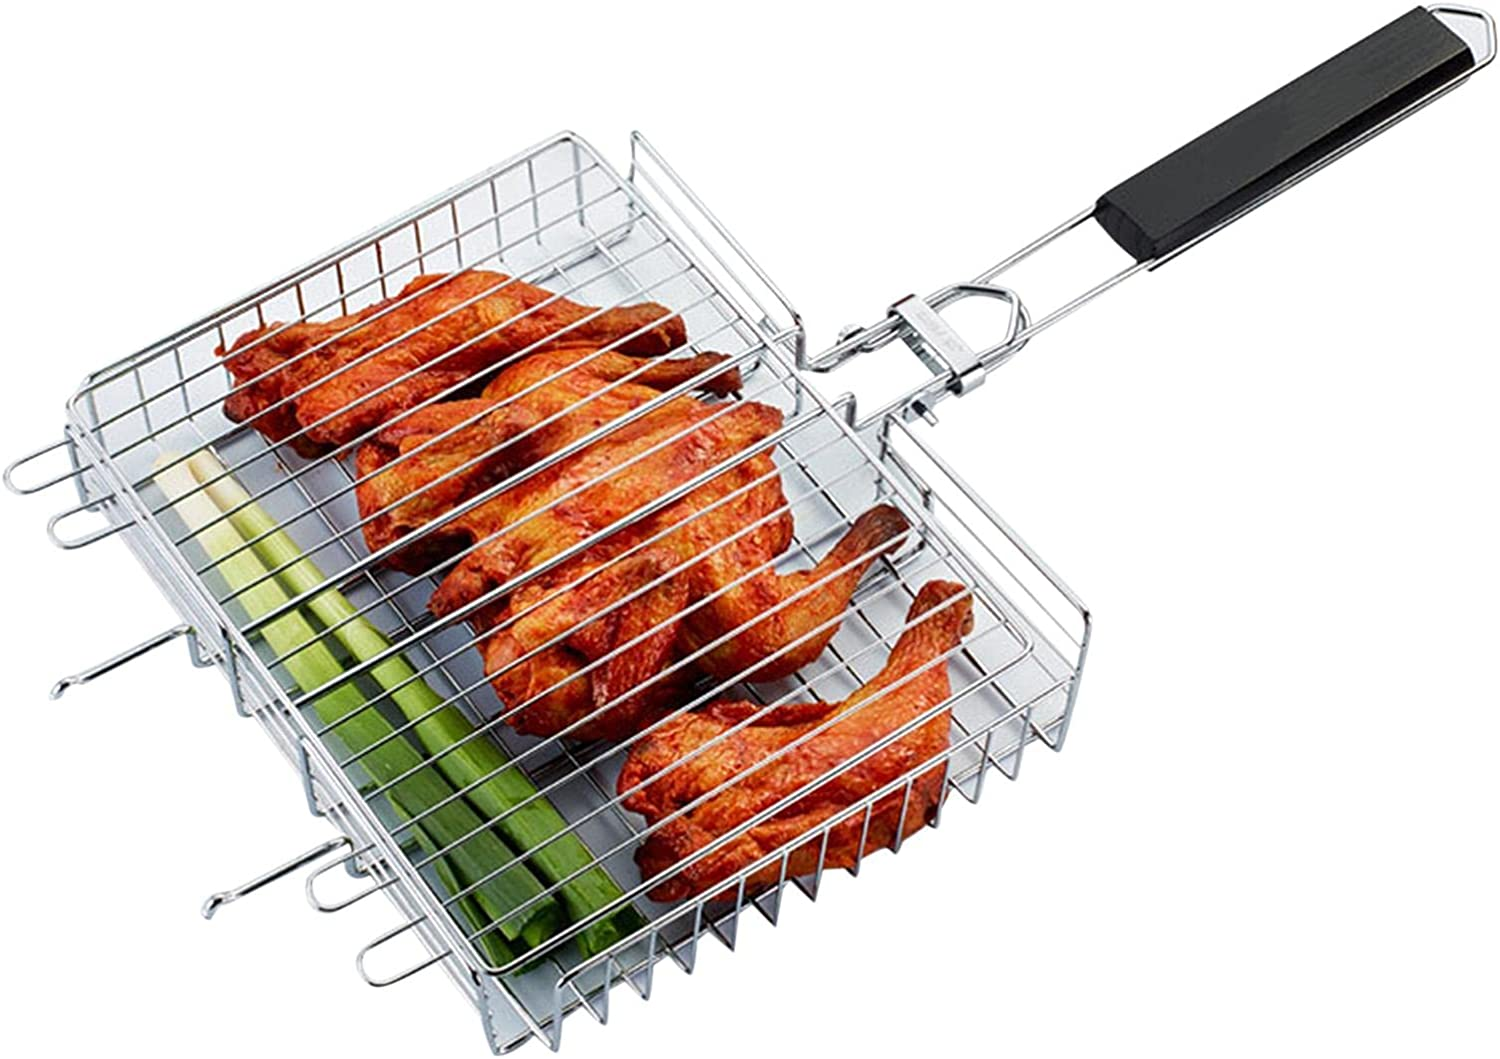 FDF Grilling Basket Stainless Steel Wooden Grill Ha with Seasonal Wrap Inexpensive Introduction